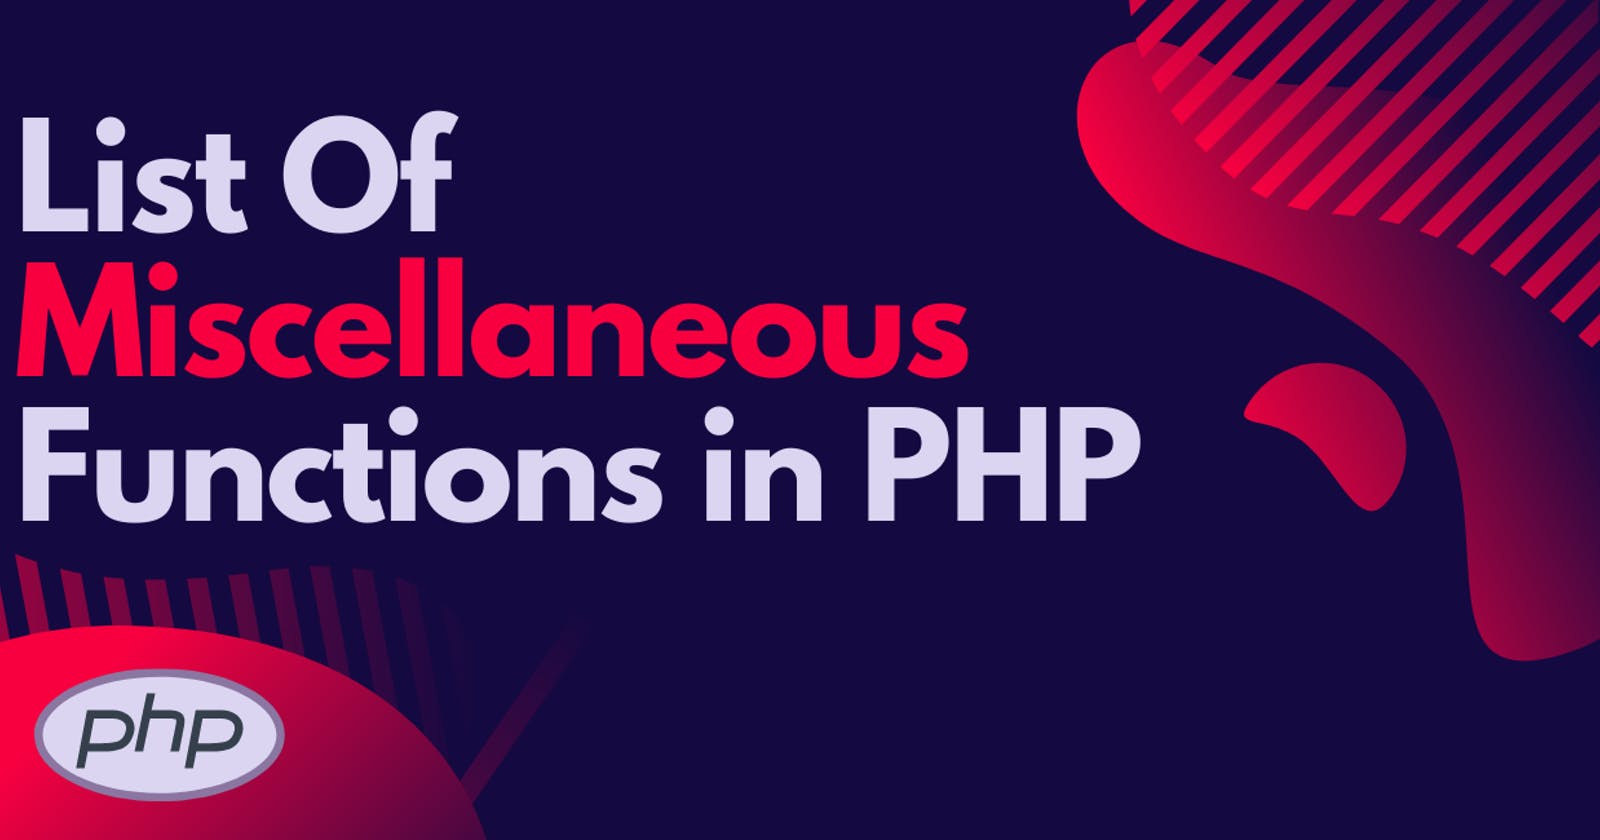 List Of Miscellaneous Functions in PHP